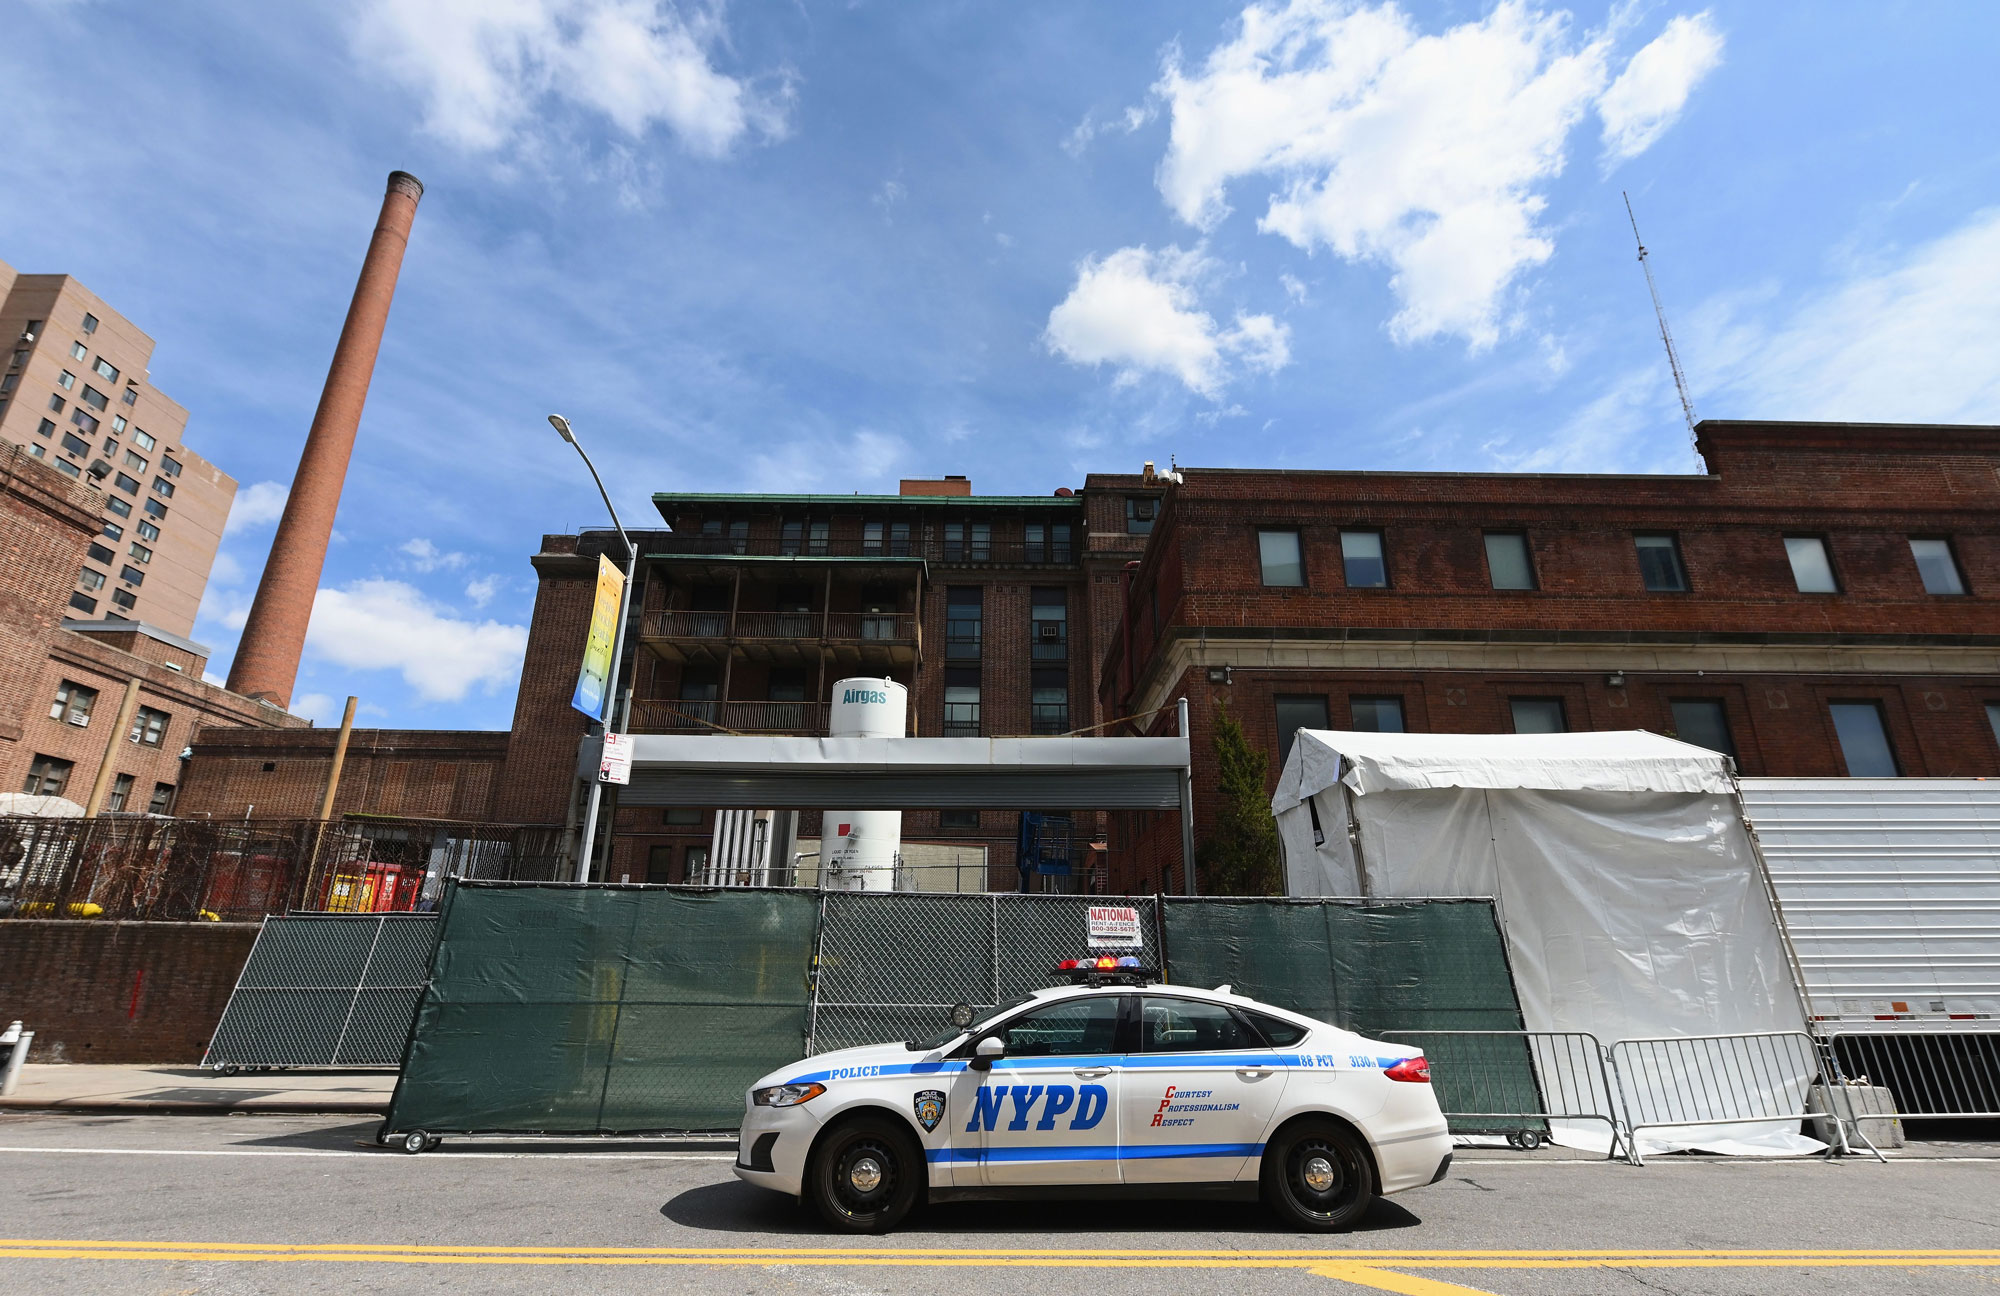 A NYPD car is parked in front of a refrigerated truckoutside of the Brooklyn Hospital on April 1, in New York City.